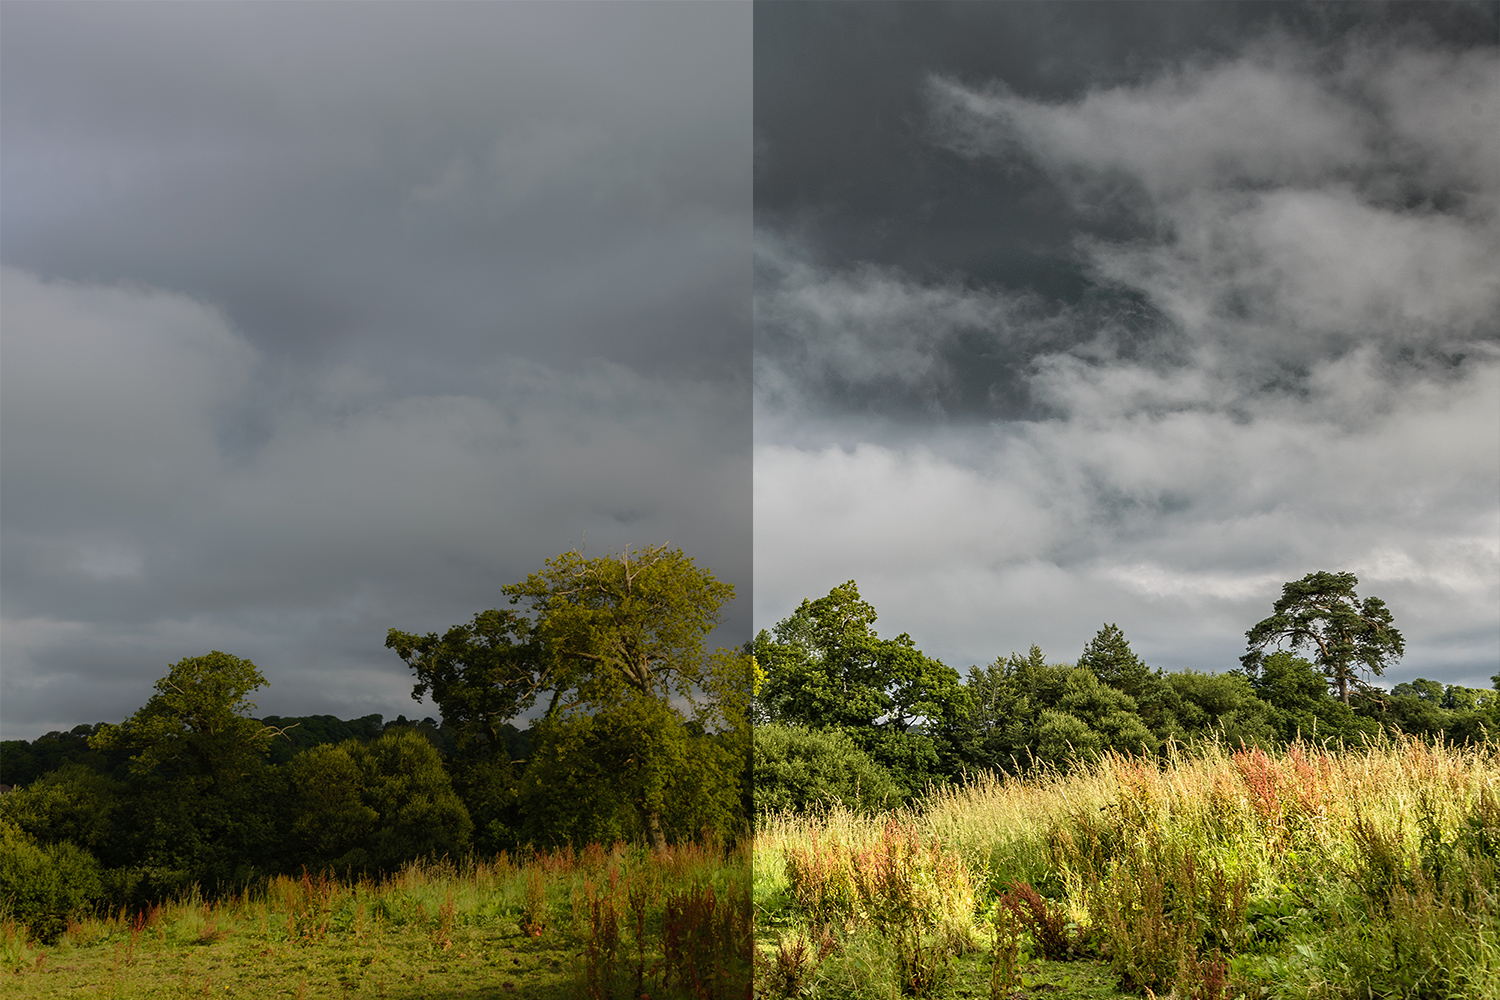 Abp Optimised Image Landscape